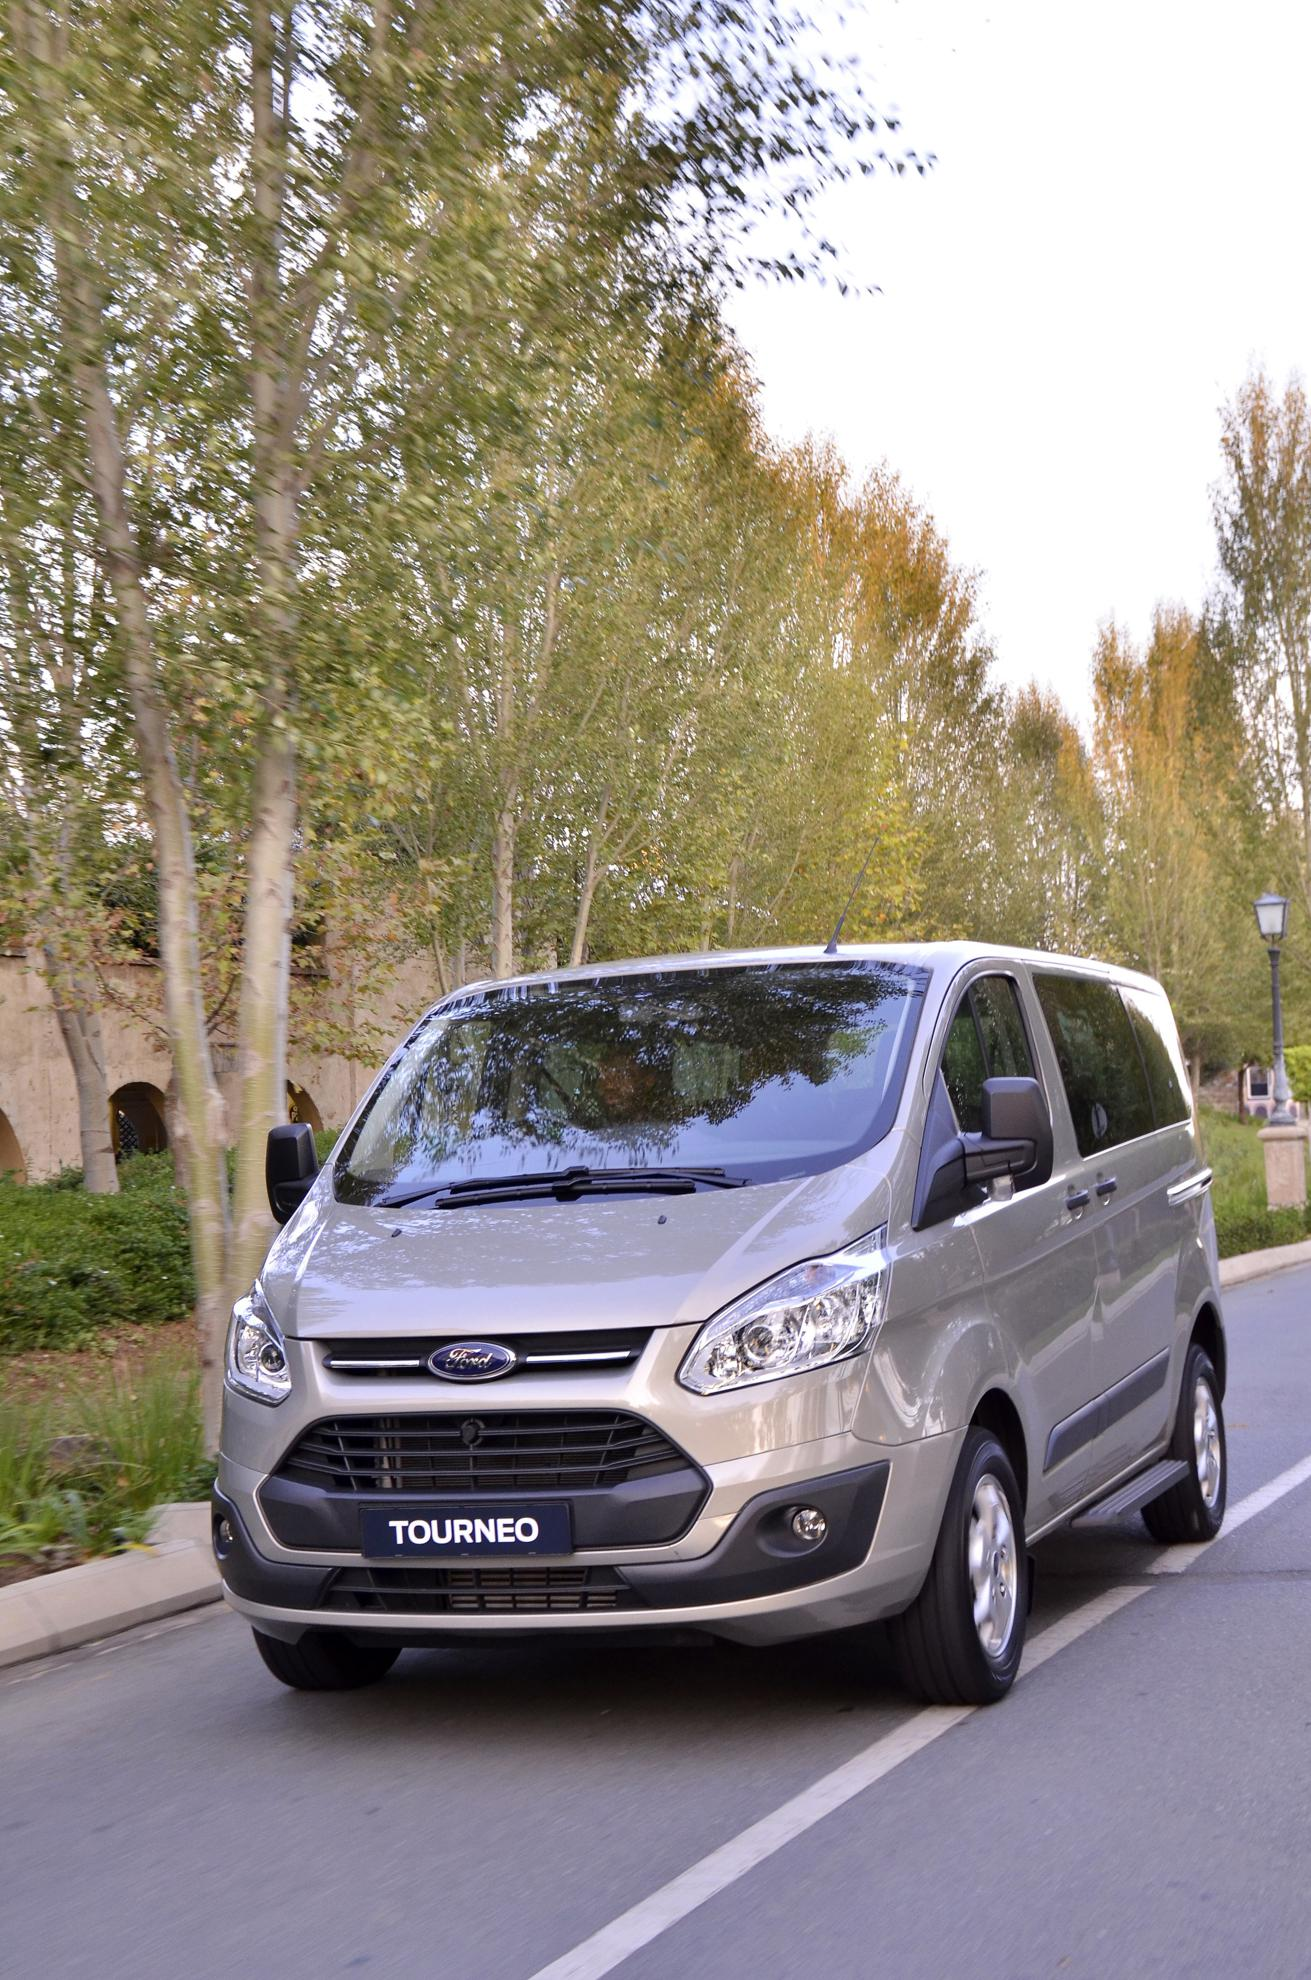 Ford Tourneo 2013 Commcercial Vehicle